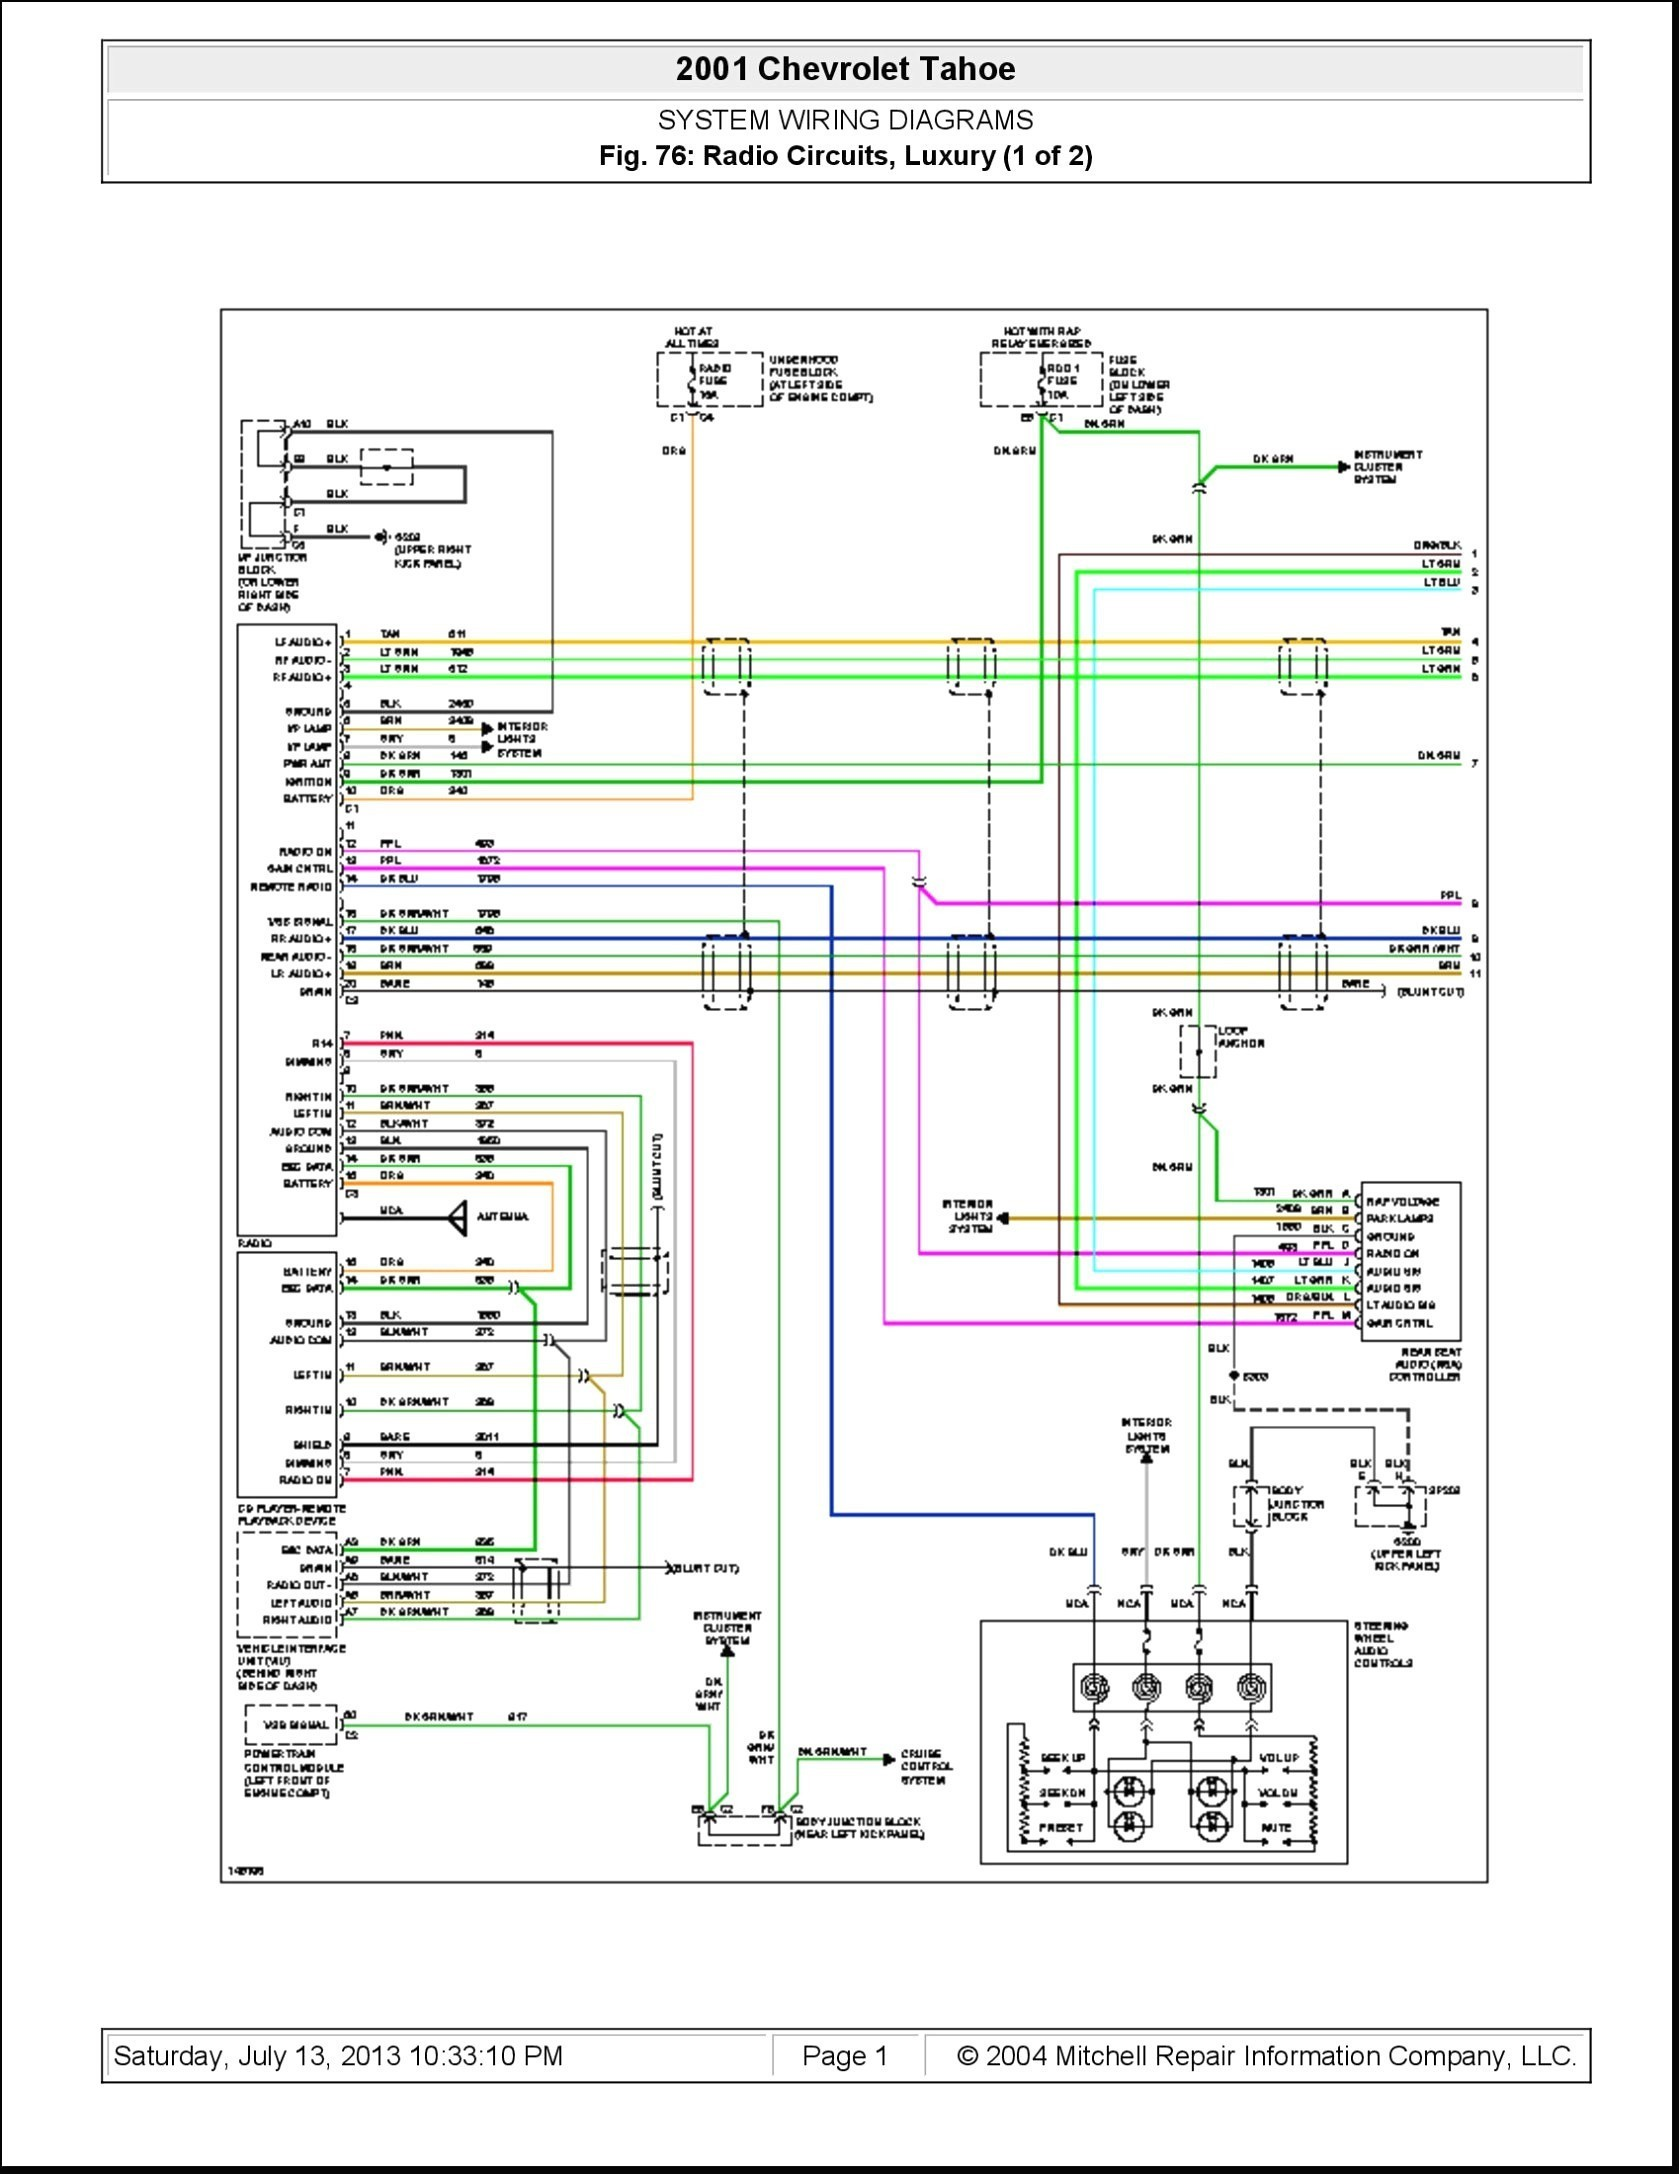 2001 Chevy Impala 3 8 Engine Diagram 2008 Chevy Impala Radio Wiring Diagram Simple 2004 Chevy Tahoe Radio Of 2001 Chevy Impala 3 8 Engine Diagram